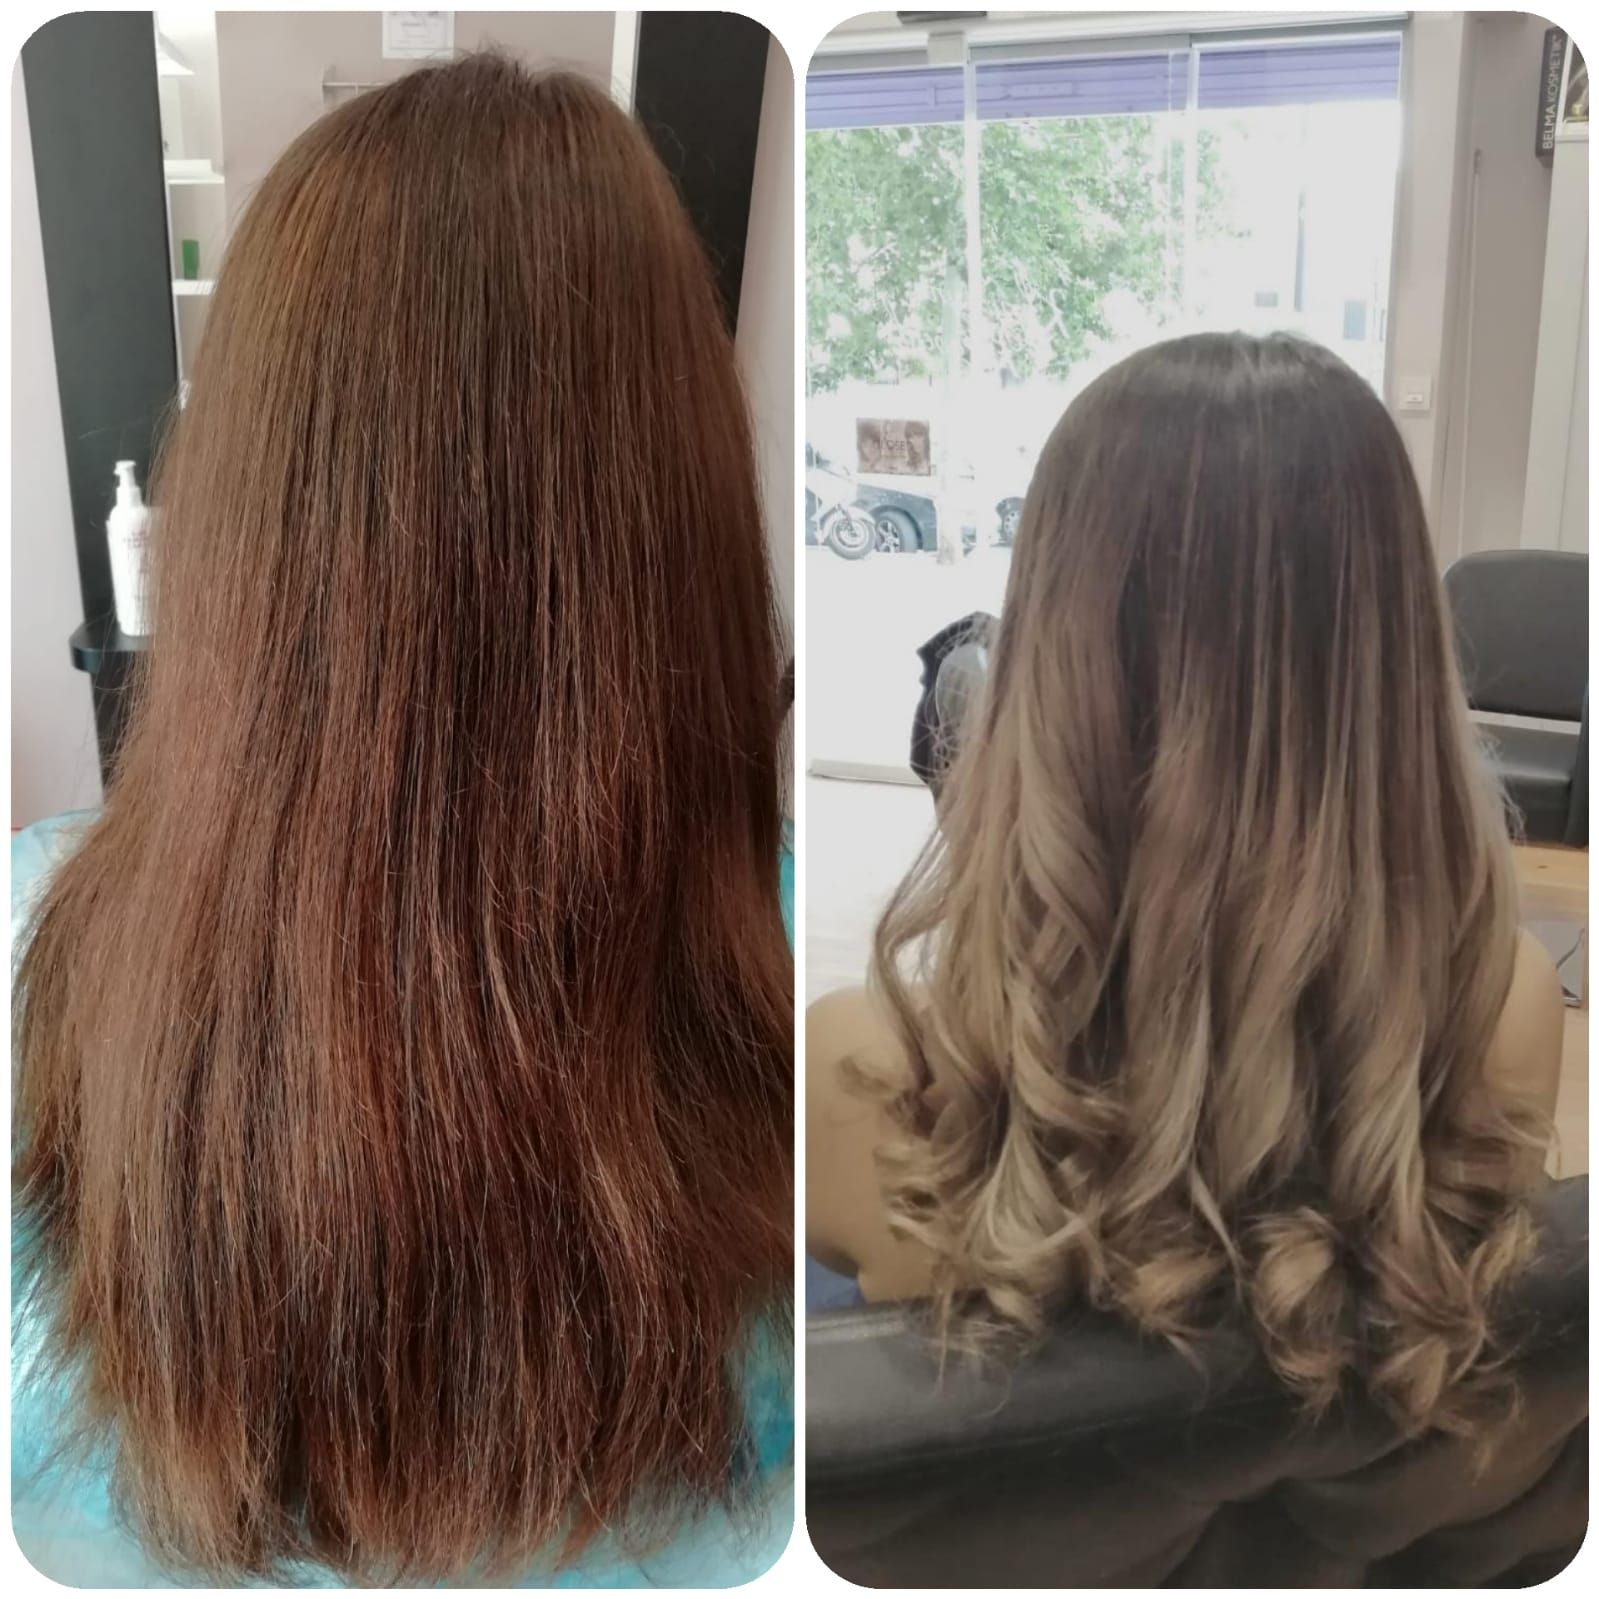 Mechas californianas para un color rubio degradado que parece natural